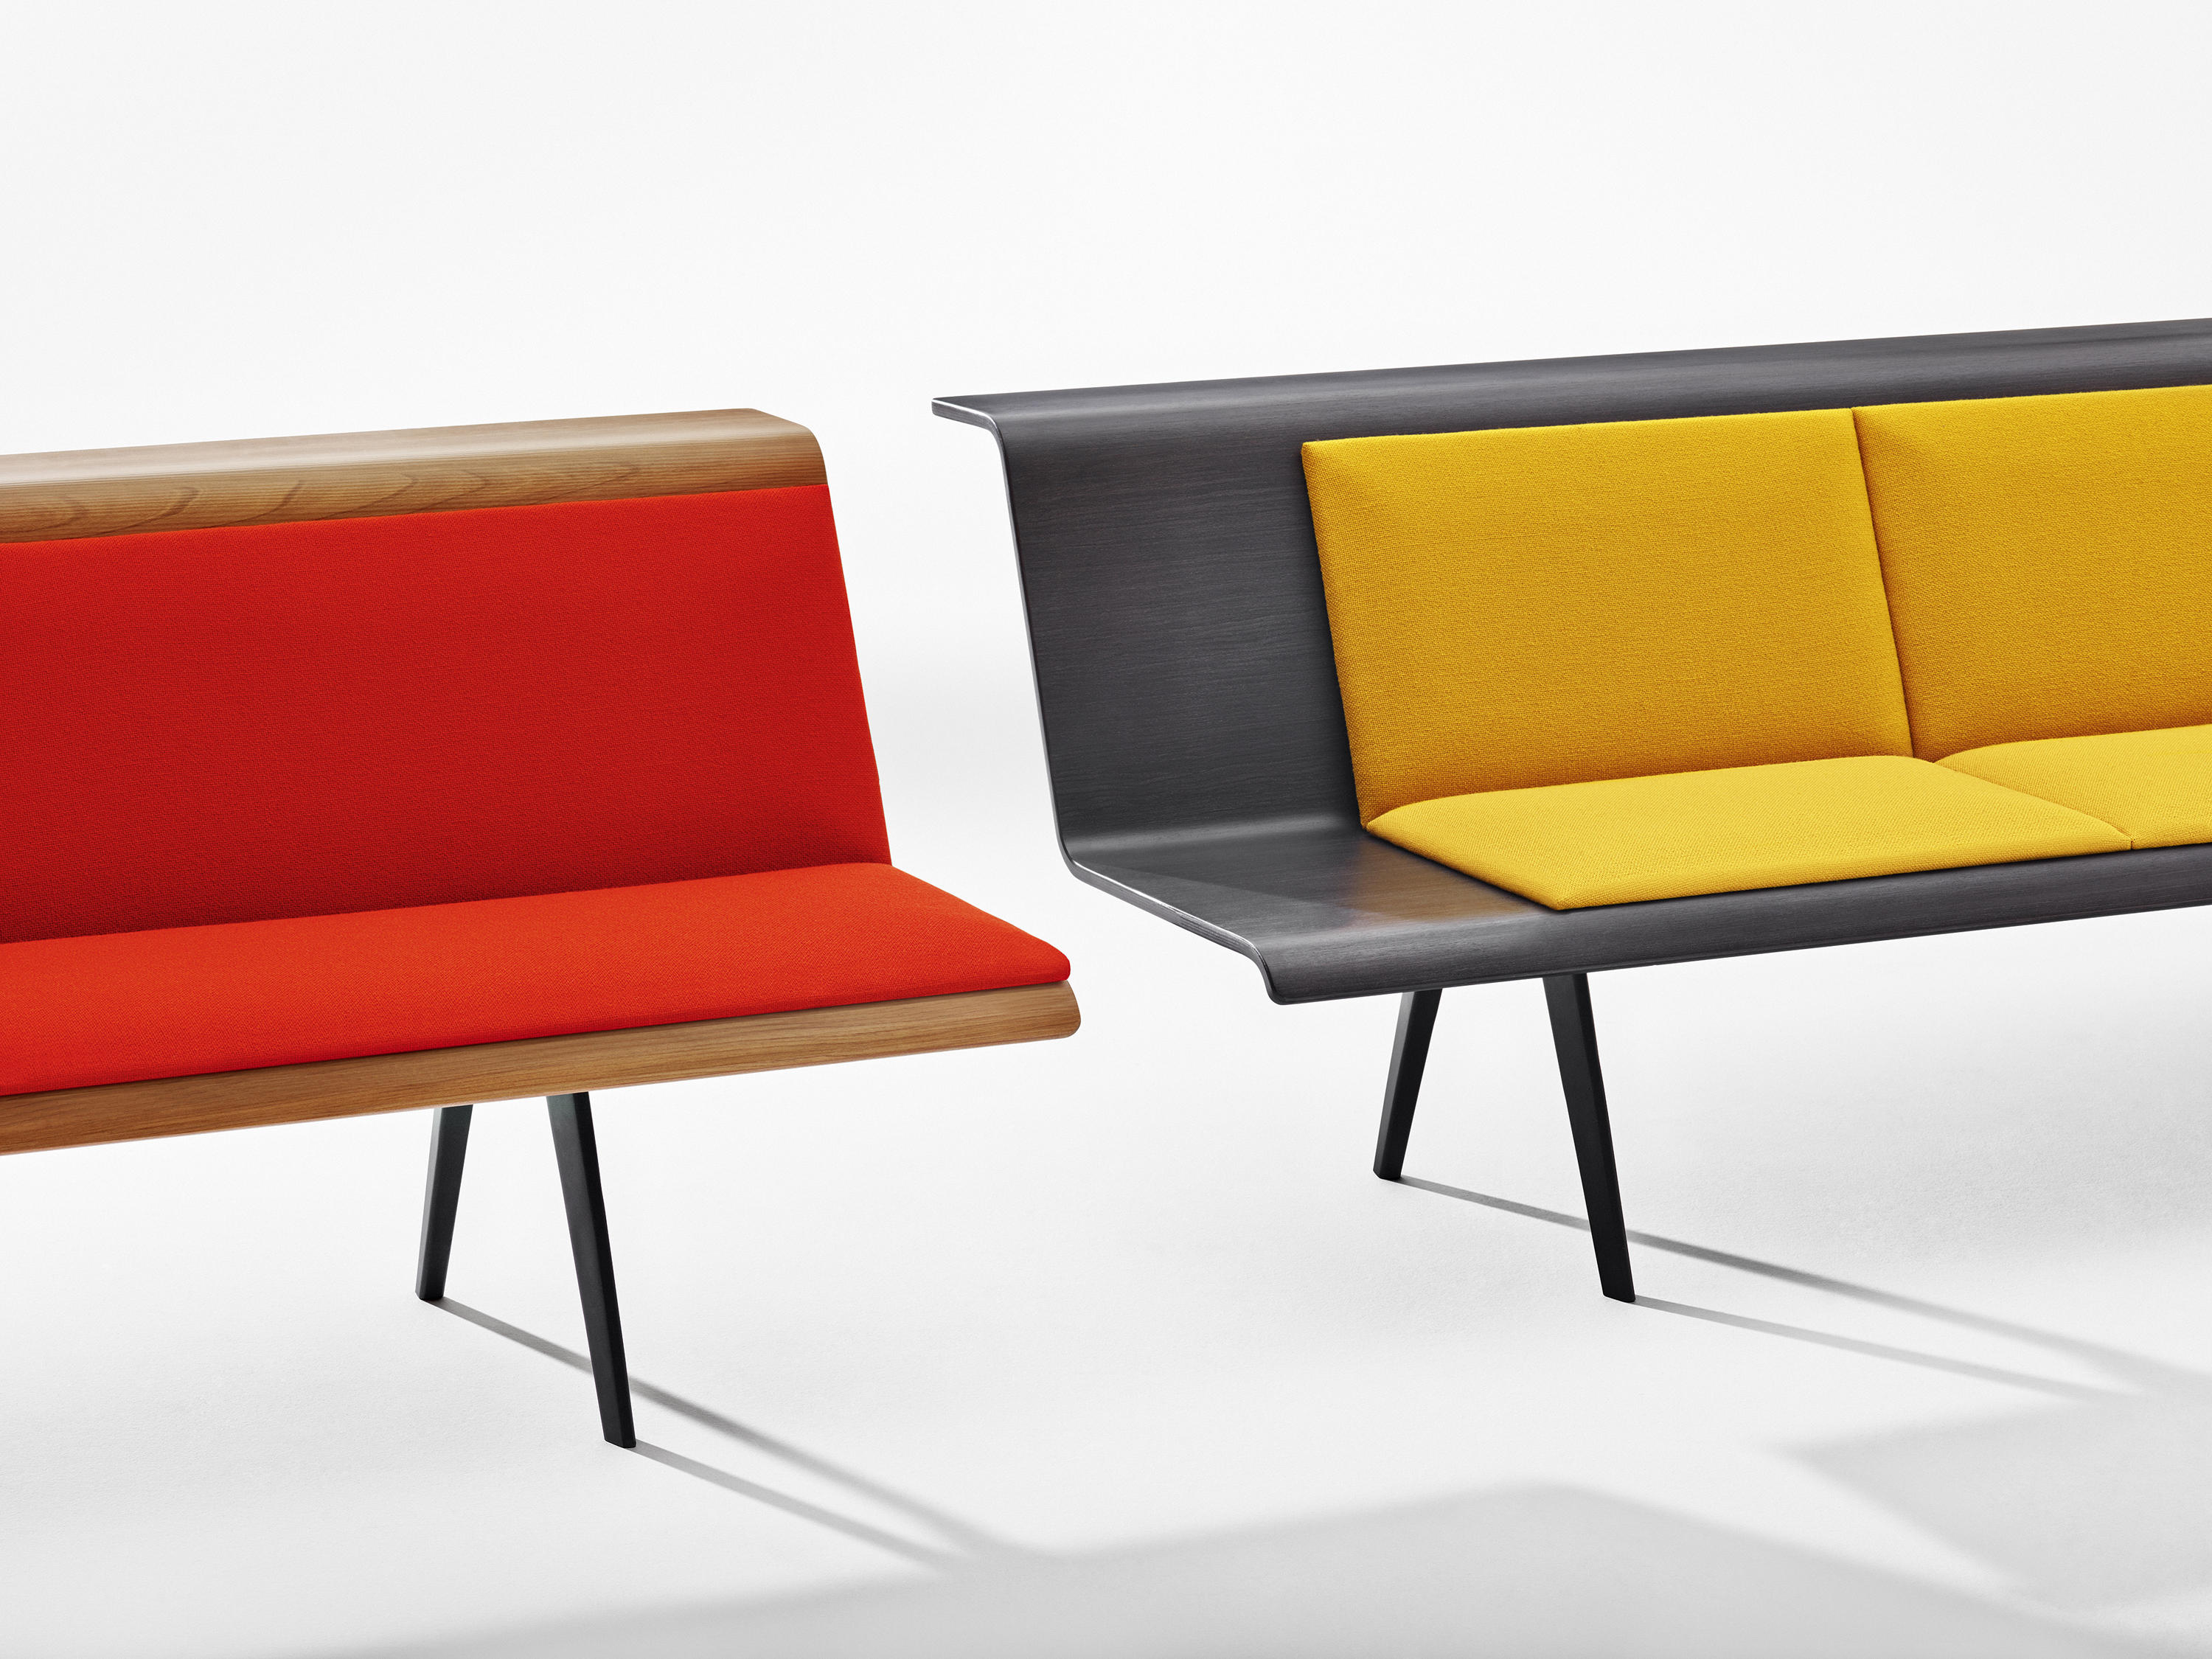 arper furniture arper furniture home design ideas and pictures  - zinta waiting waiting area benches from arper architonic